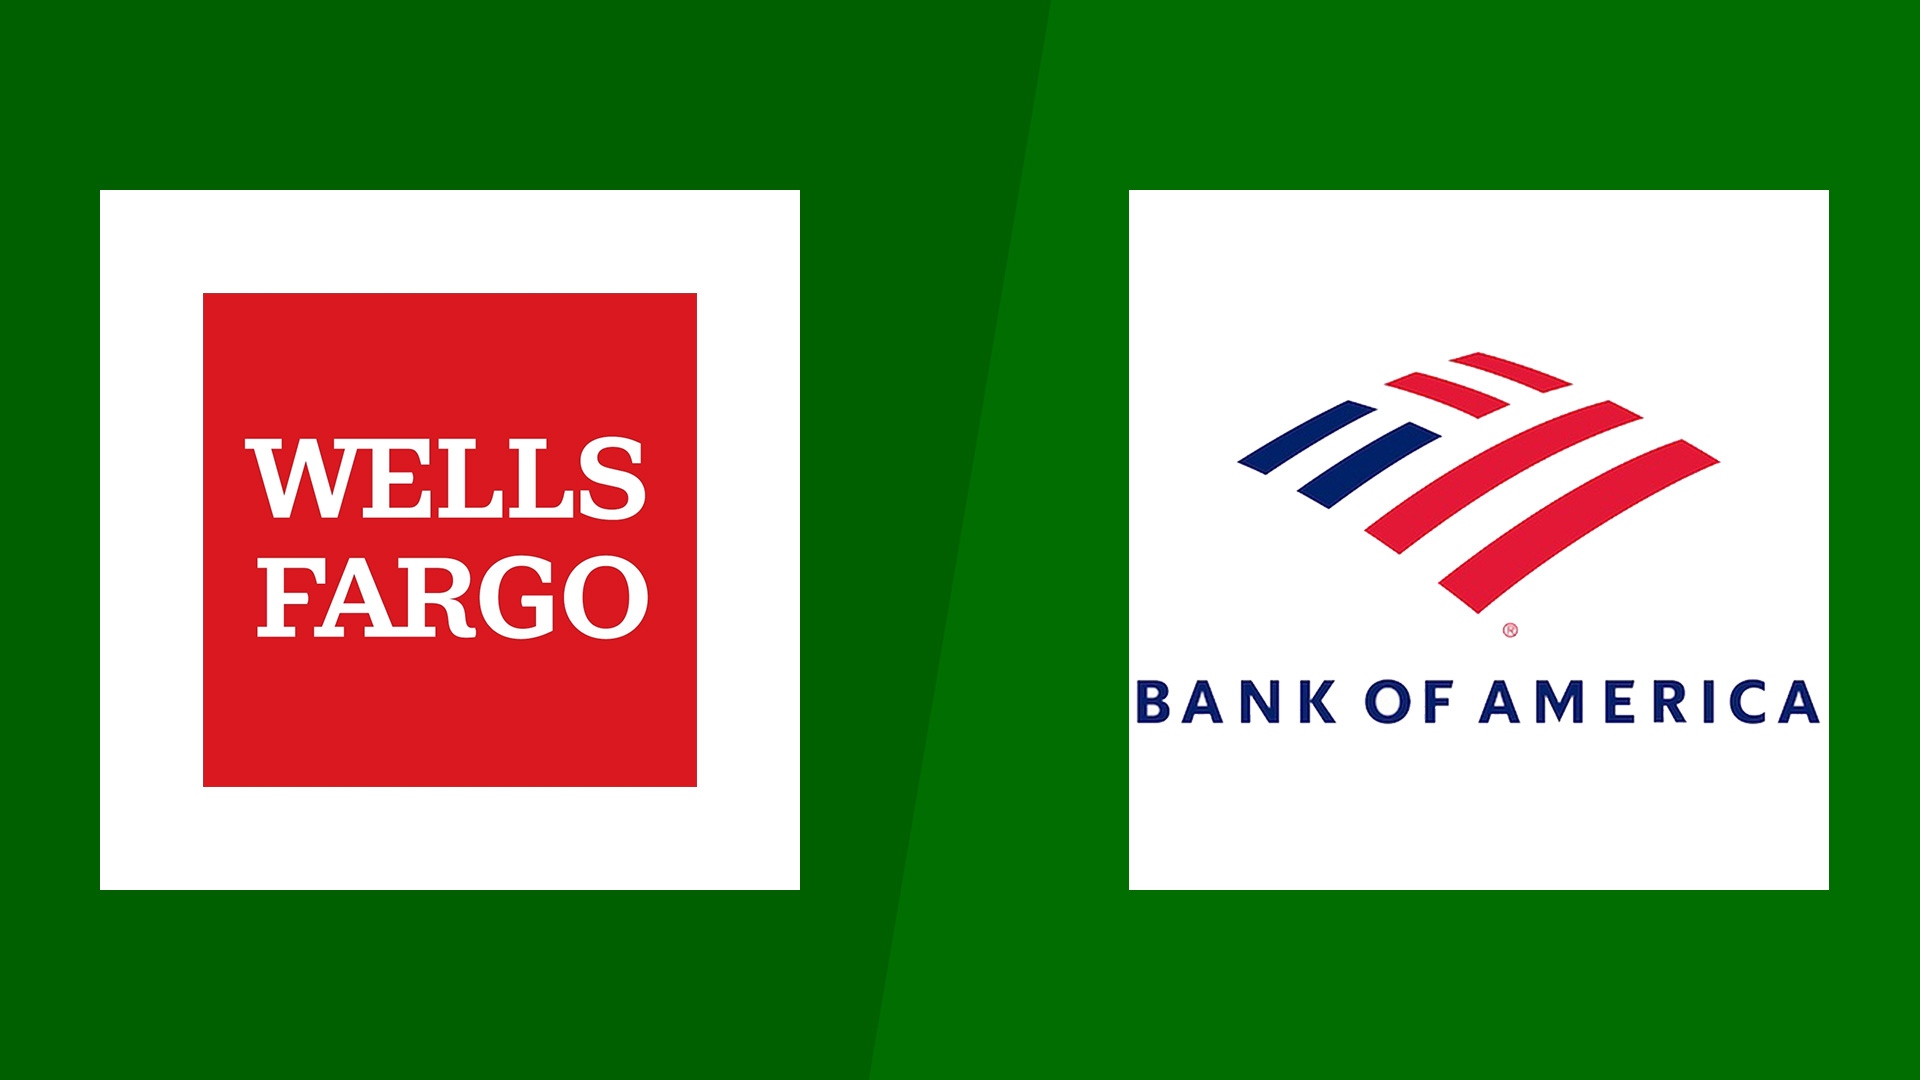 Wells Fargo vs Bank of America